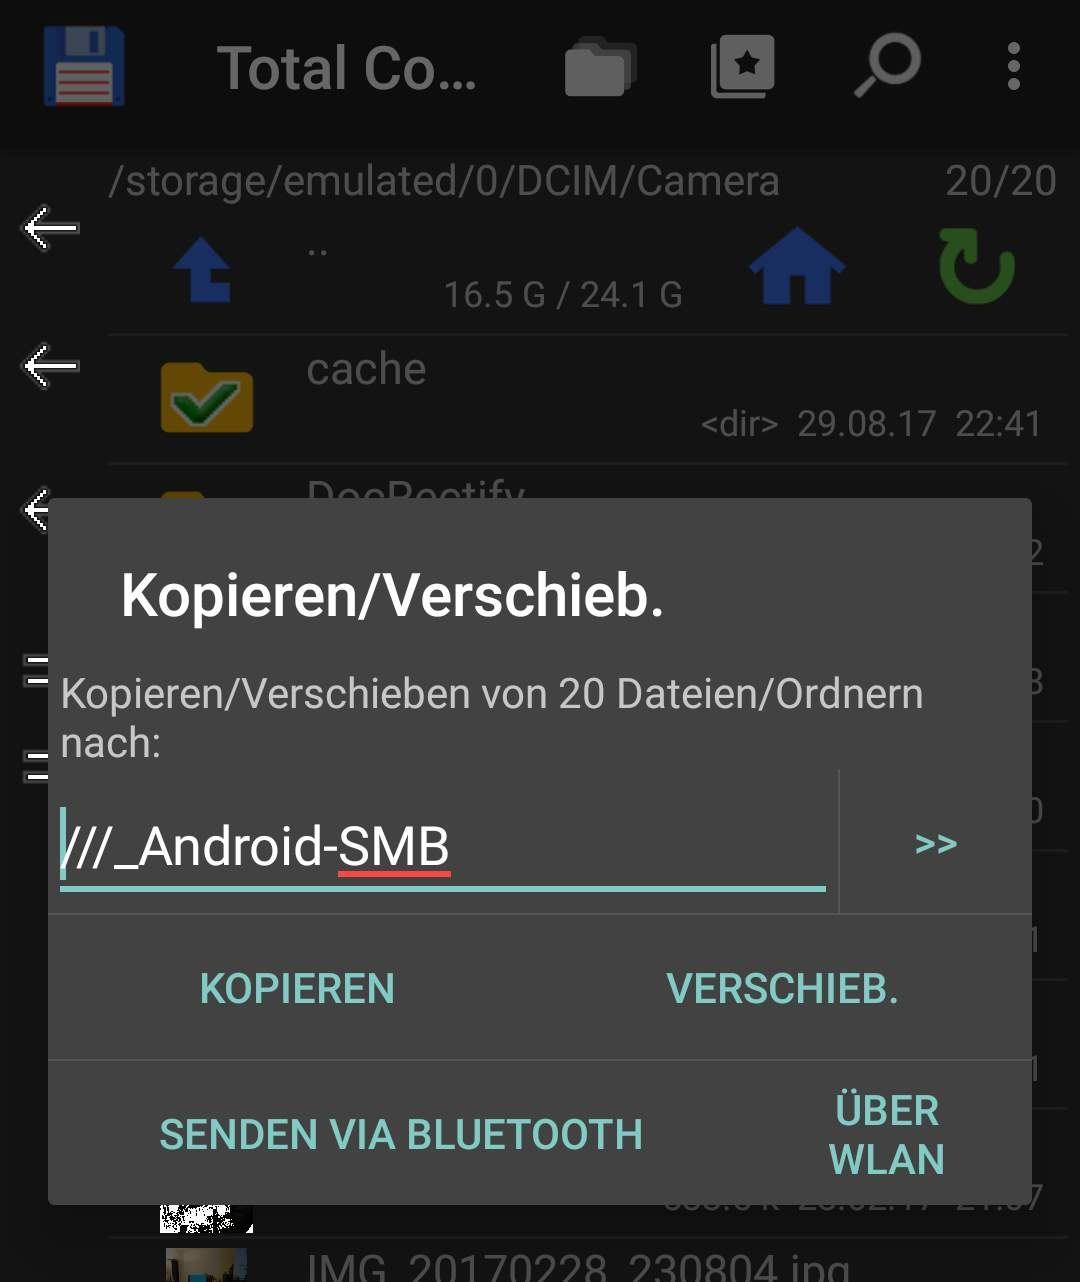 freigaben_android_smb